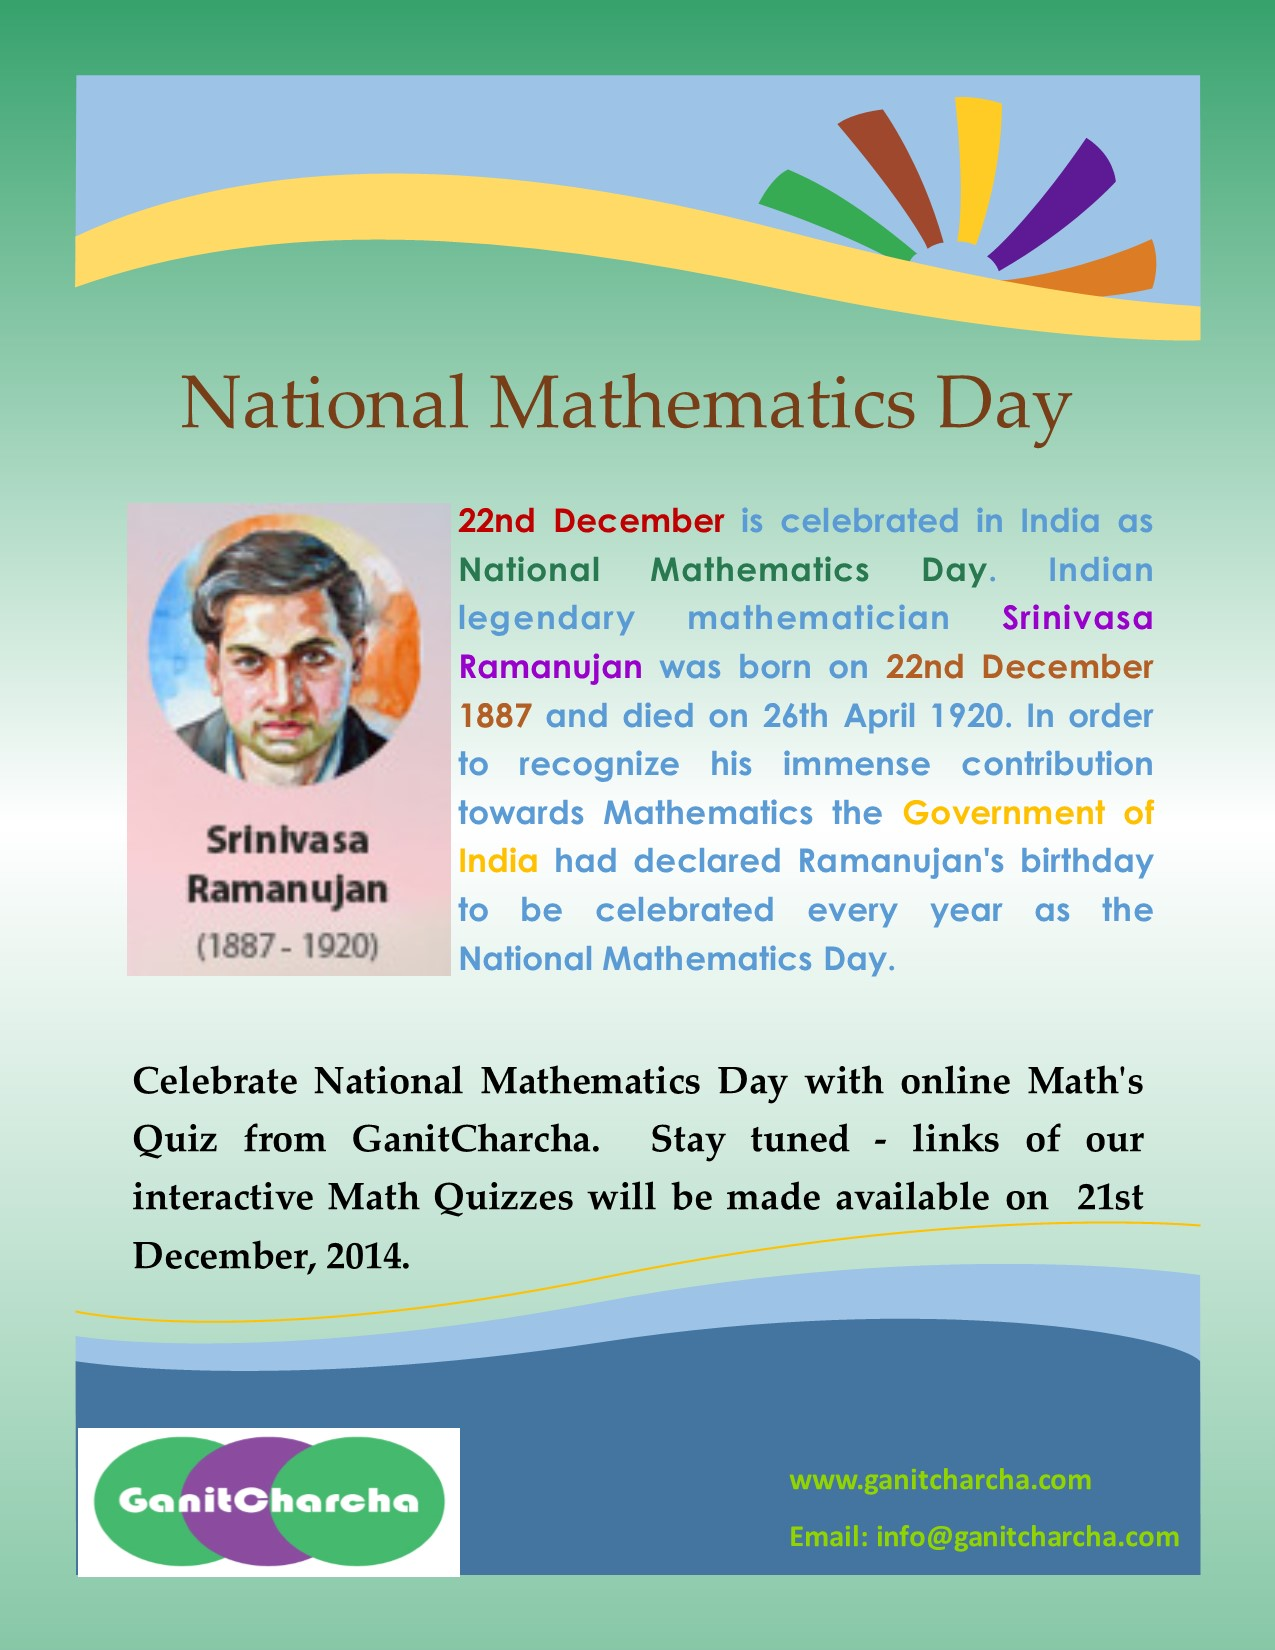 National Mathematics Day of India - 22nd December